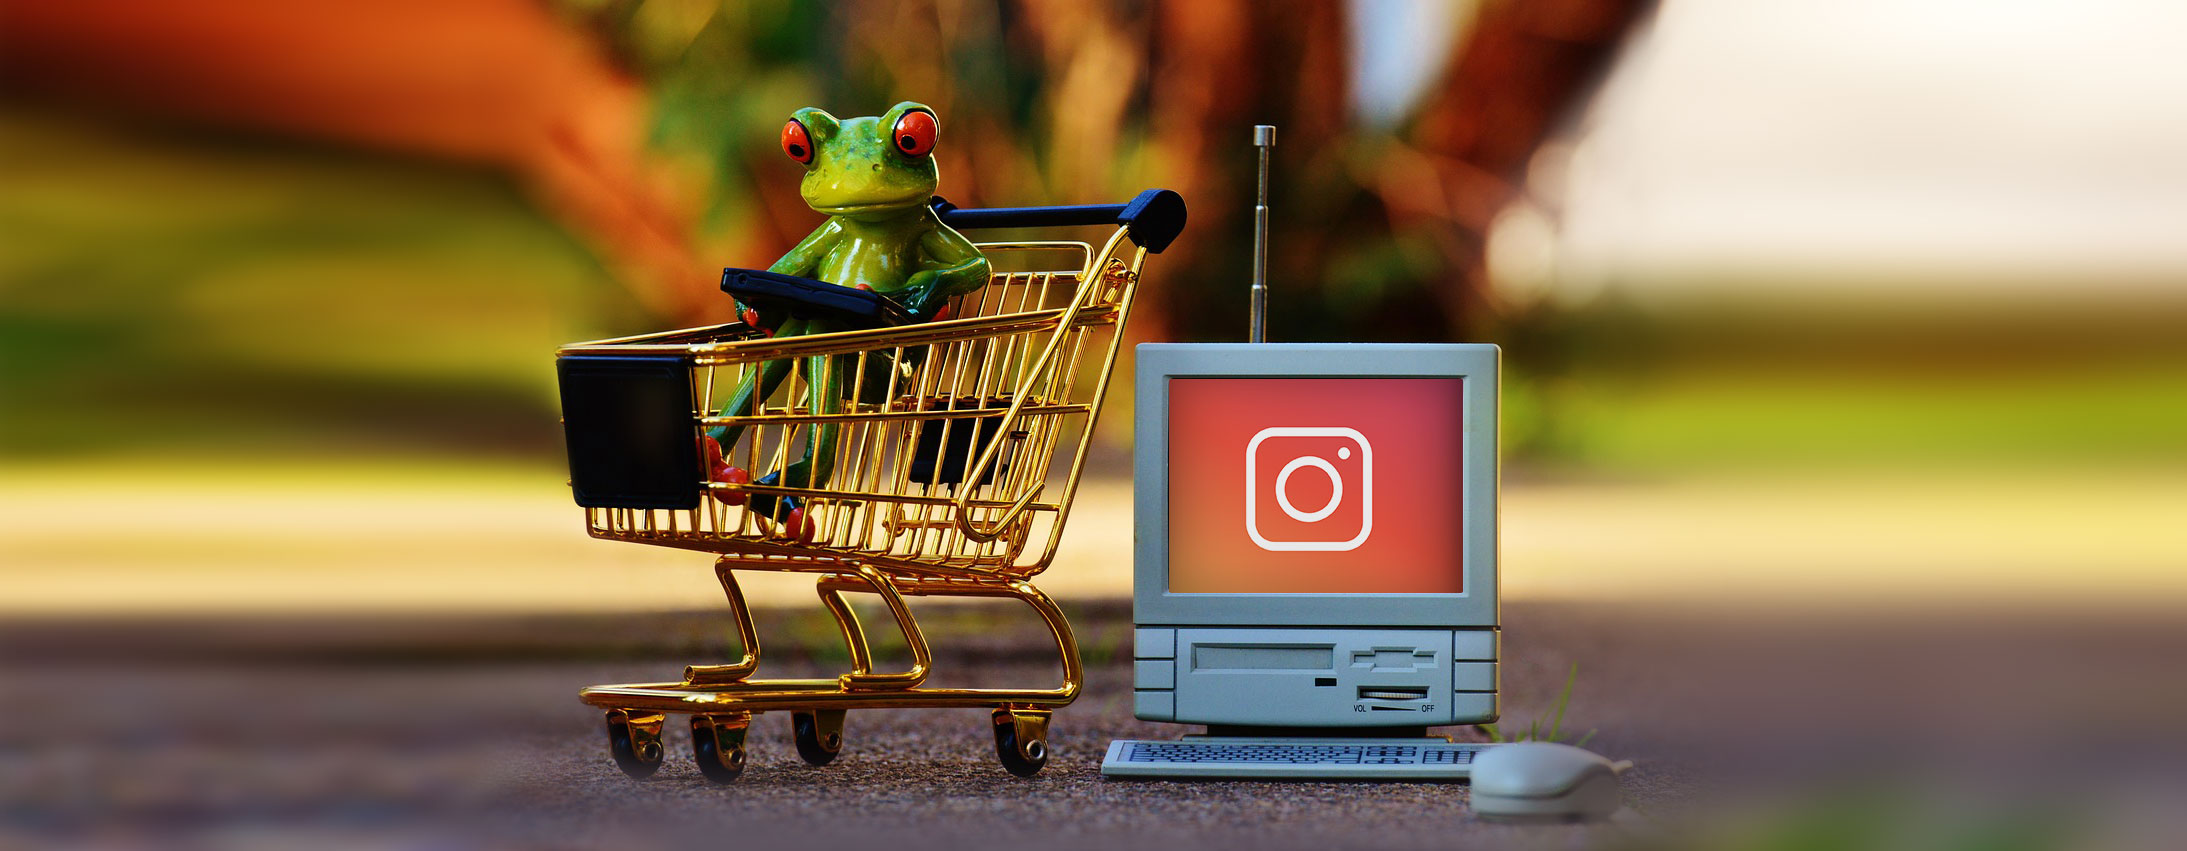 How To Set Up Shoppable Posts on Instagram – Carney